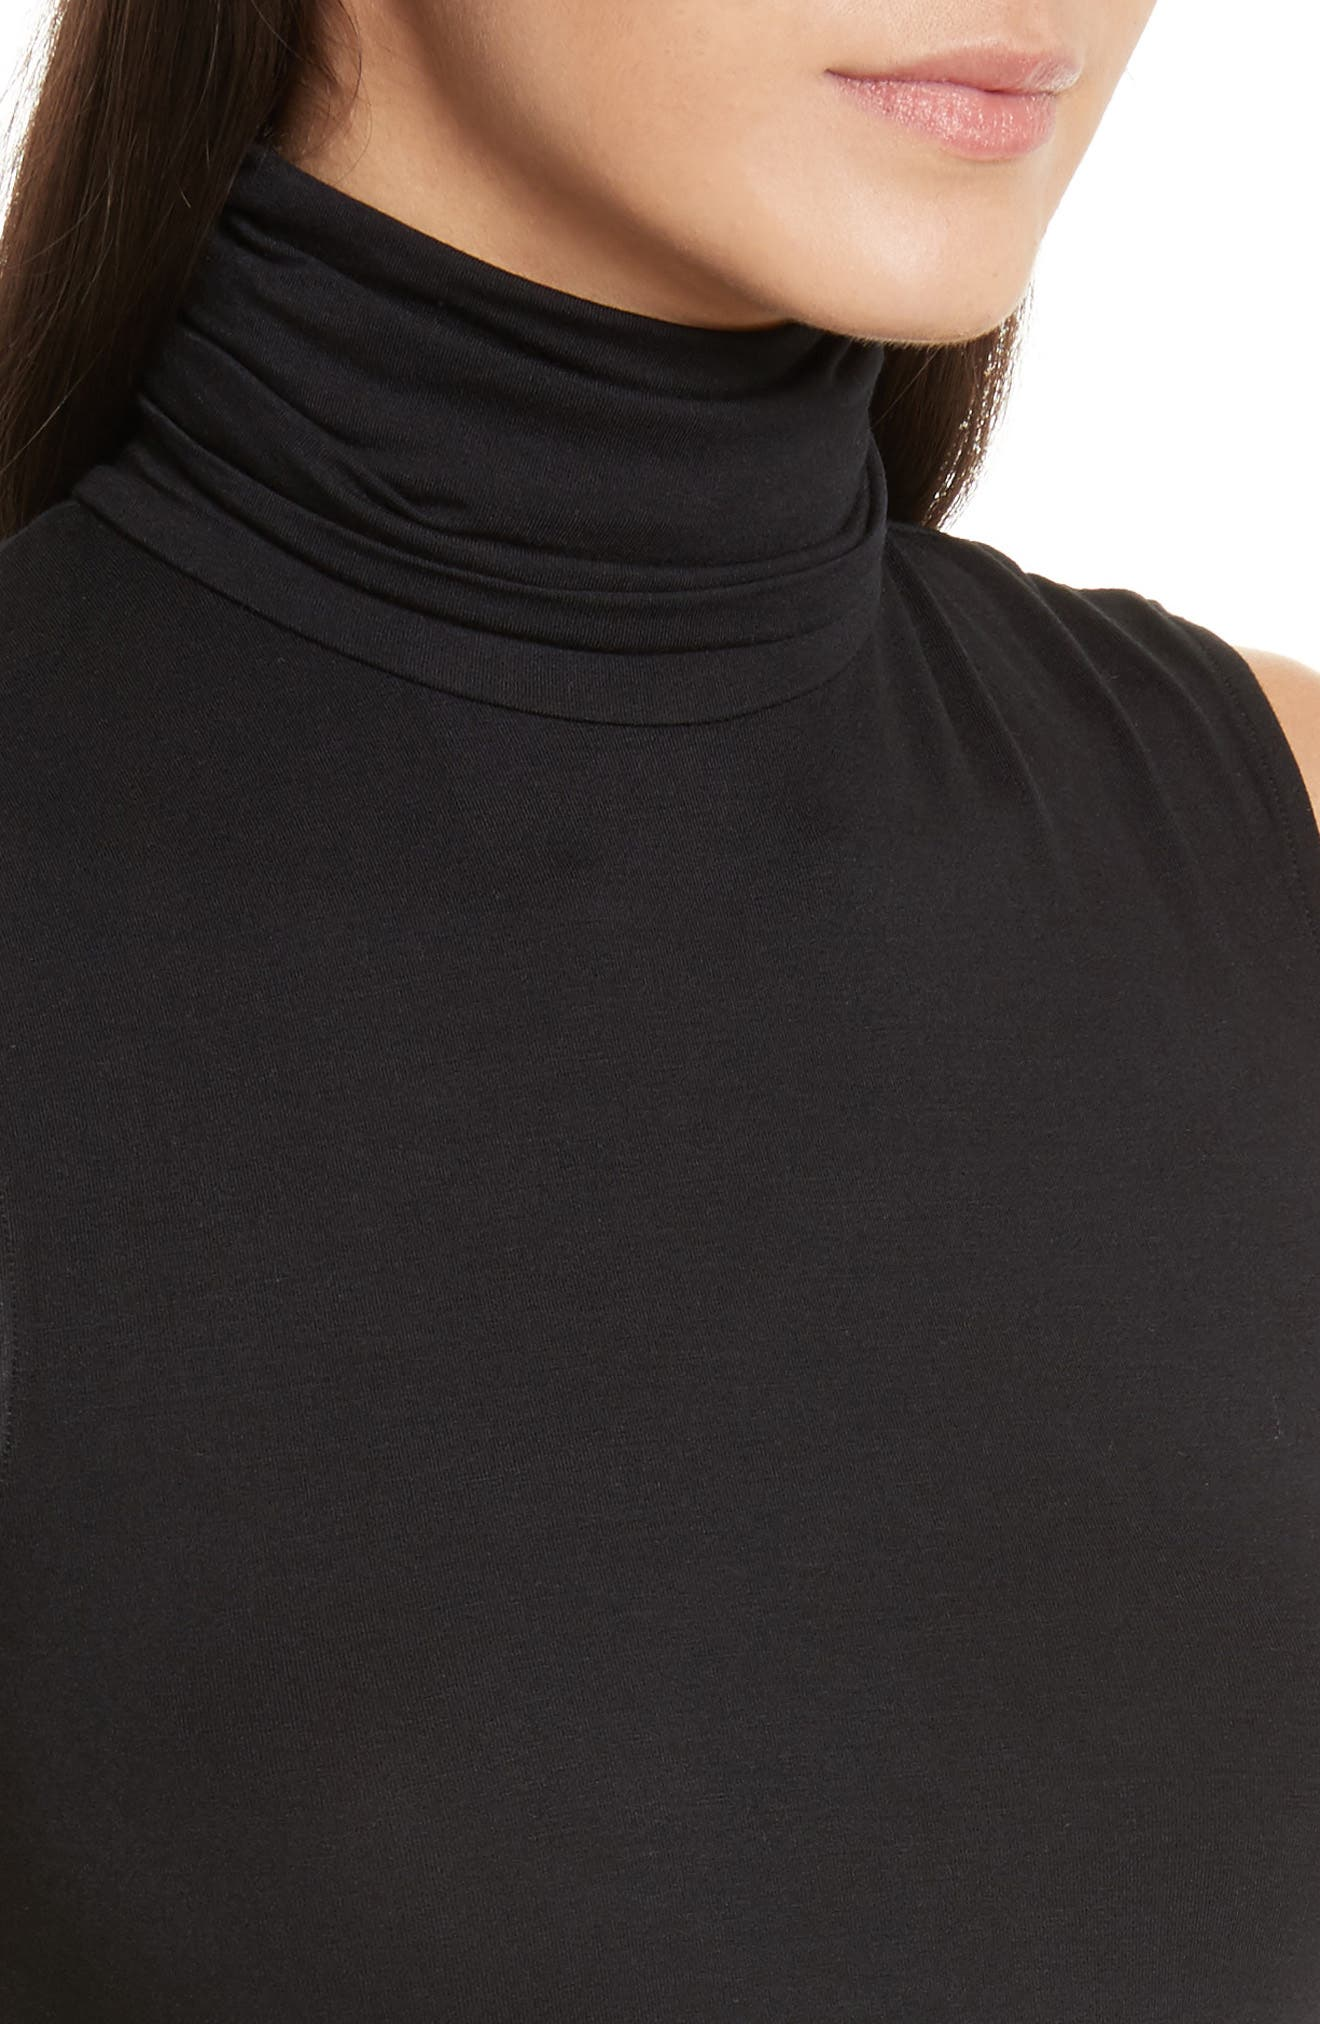 Turtleneck Top,                             Alternate thumbnail 7, color,